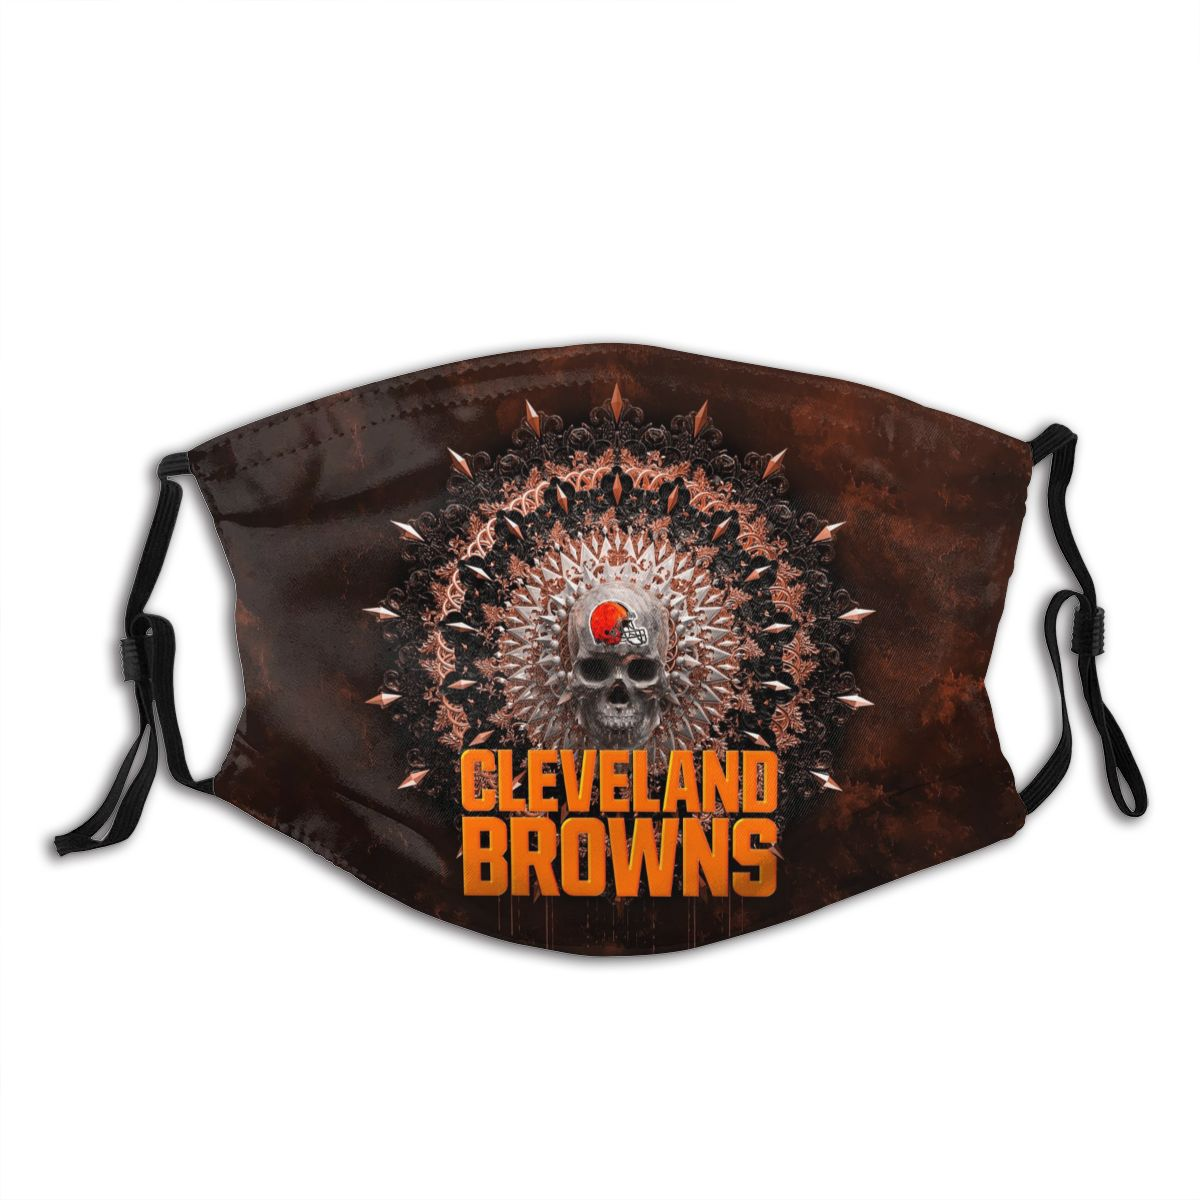 Browns Adult Cloth Face Covering With Filter